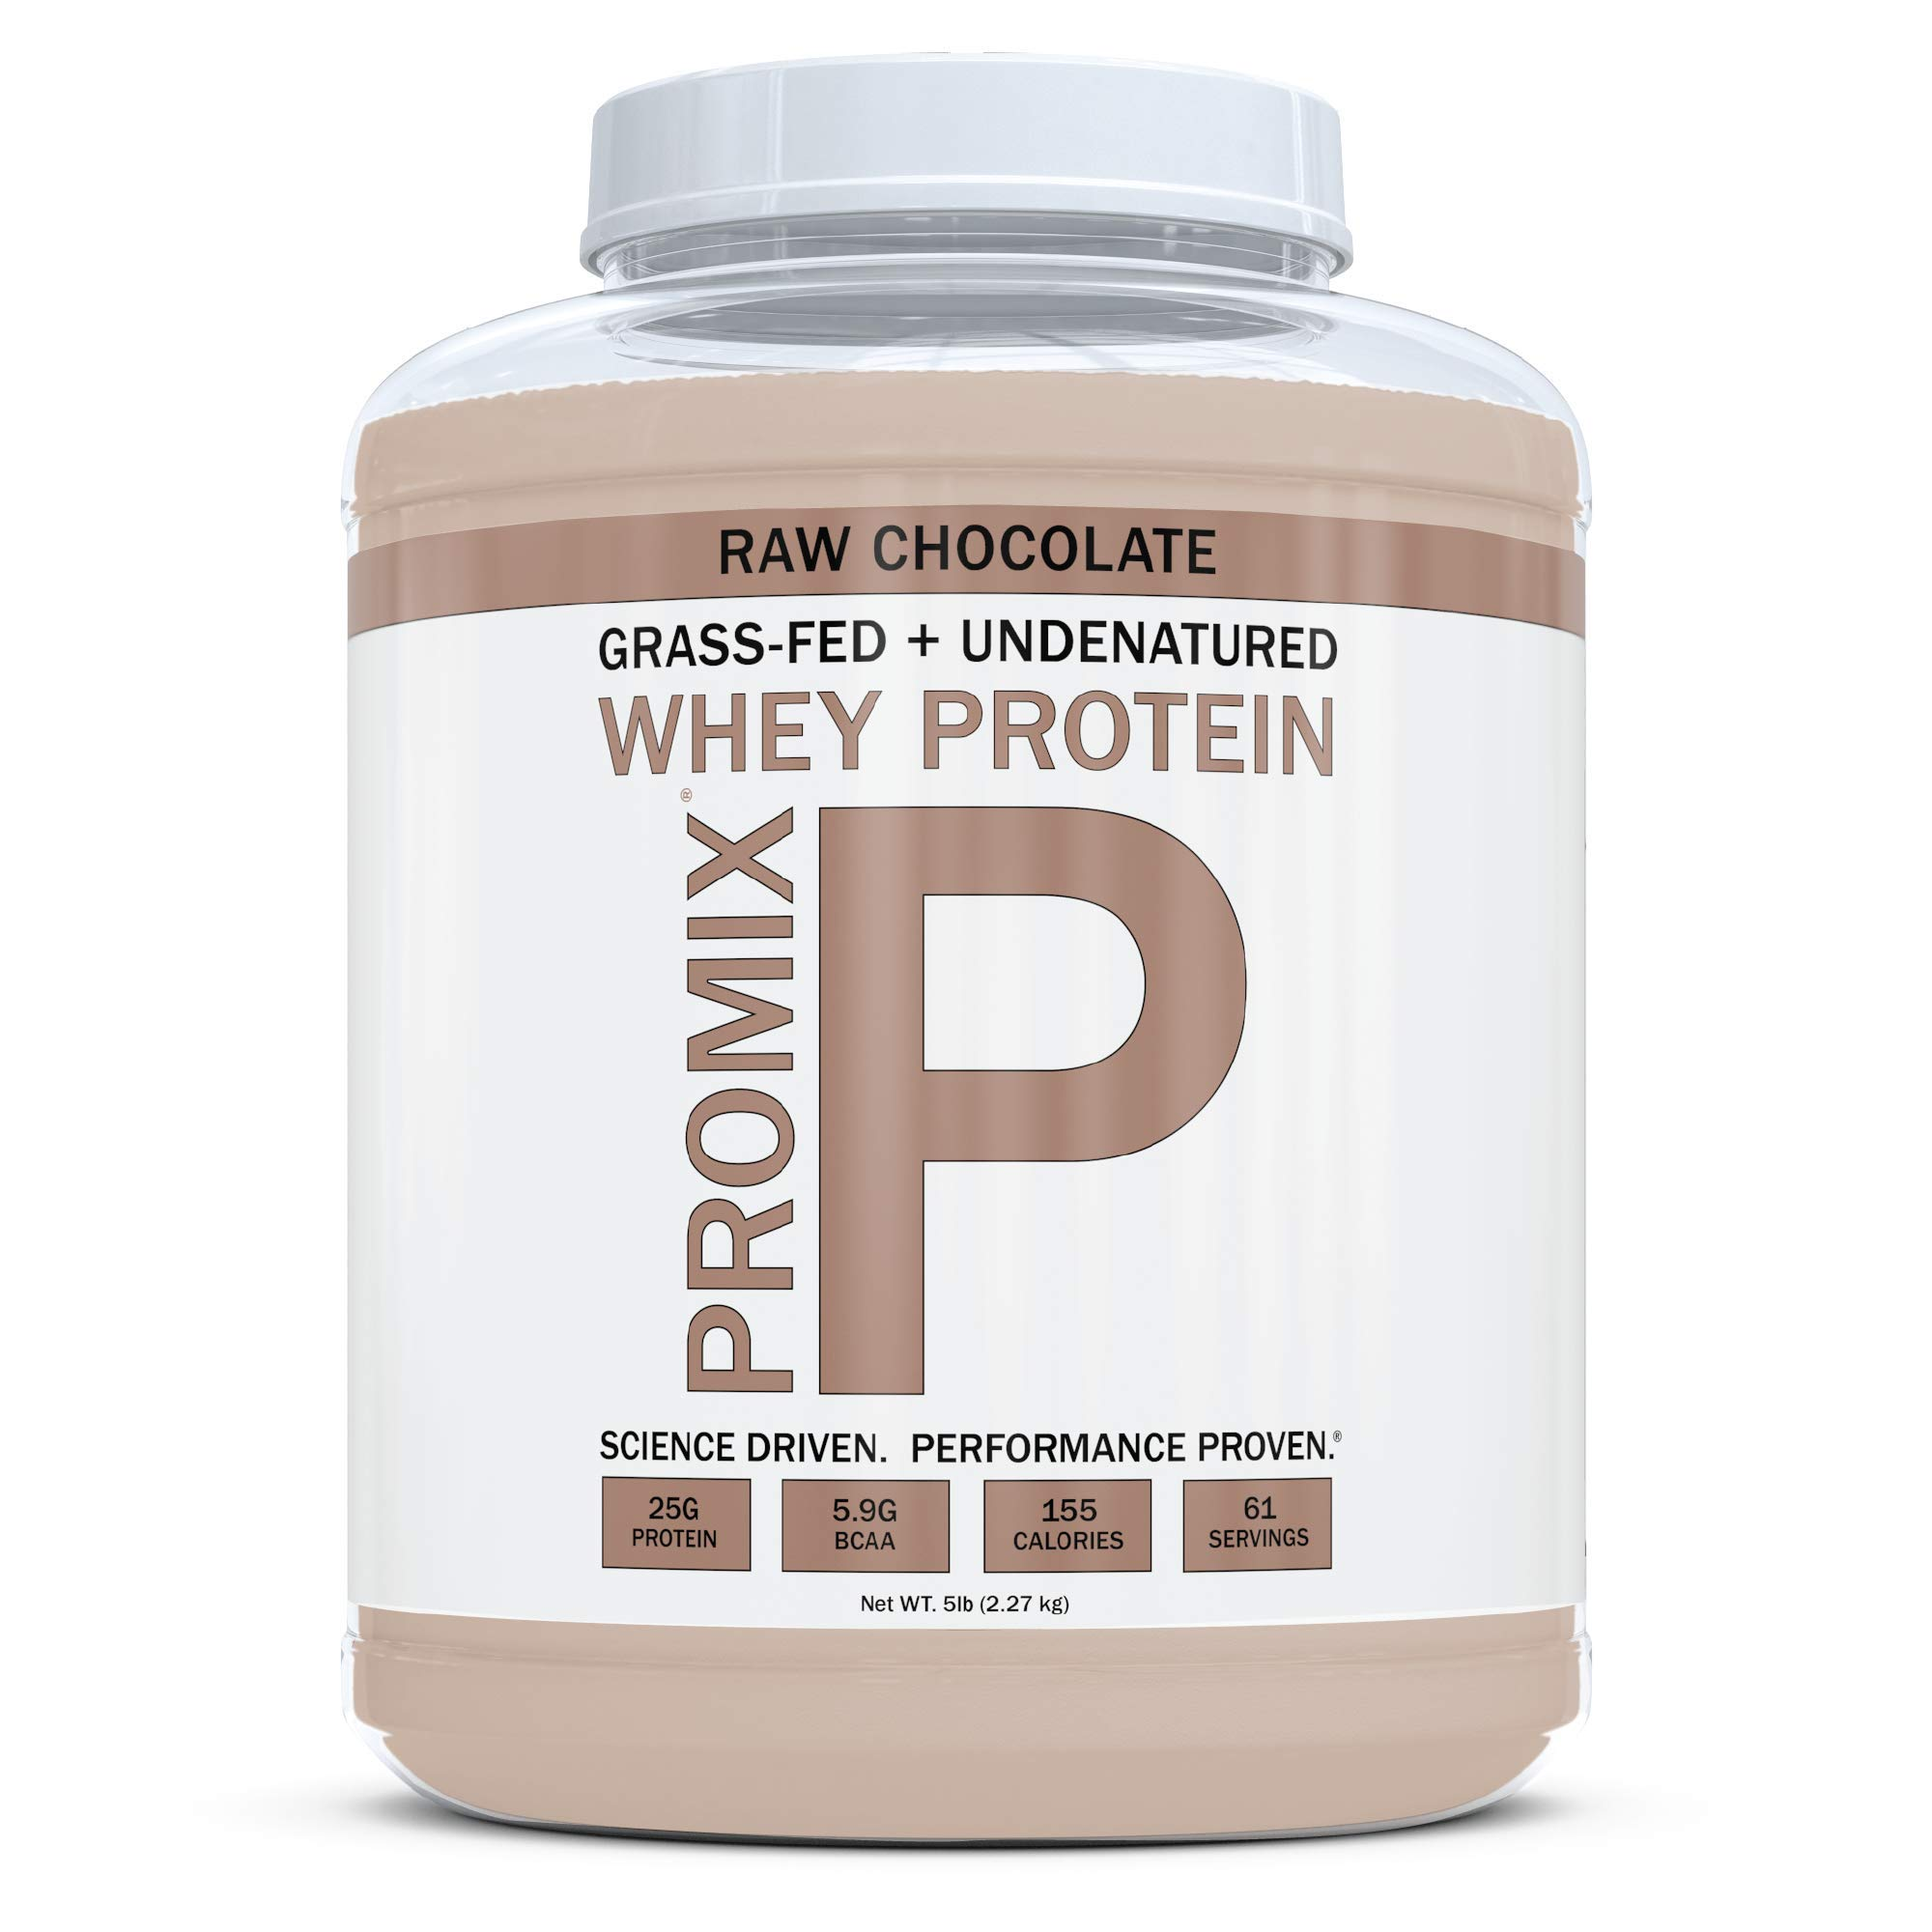 ProMix Nutrition Container of Chocolate Grass-Fed Whey Protein, 5 Pound